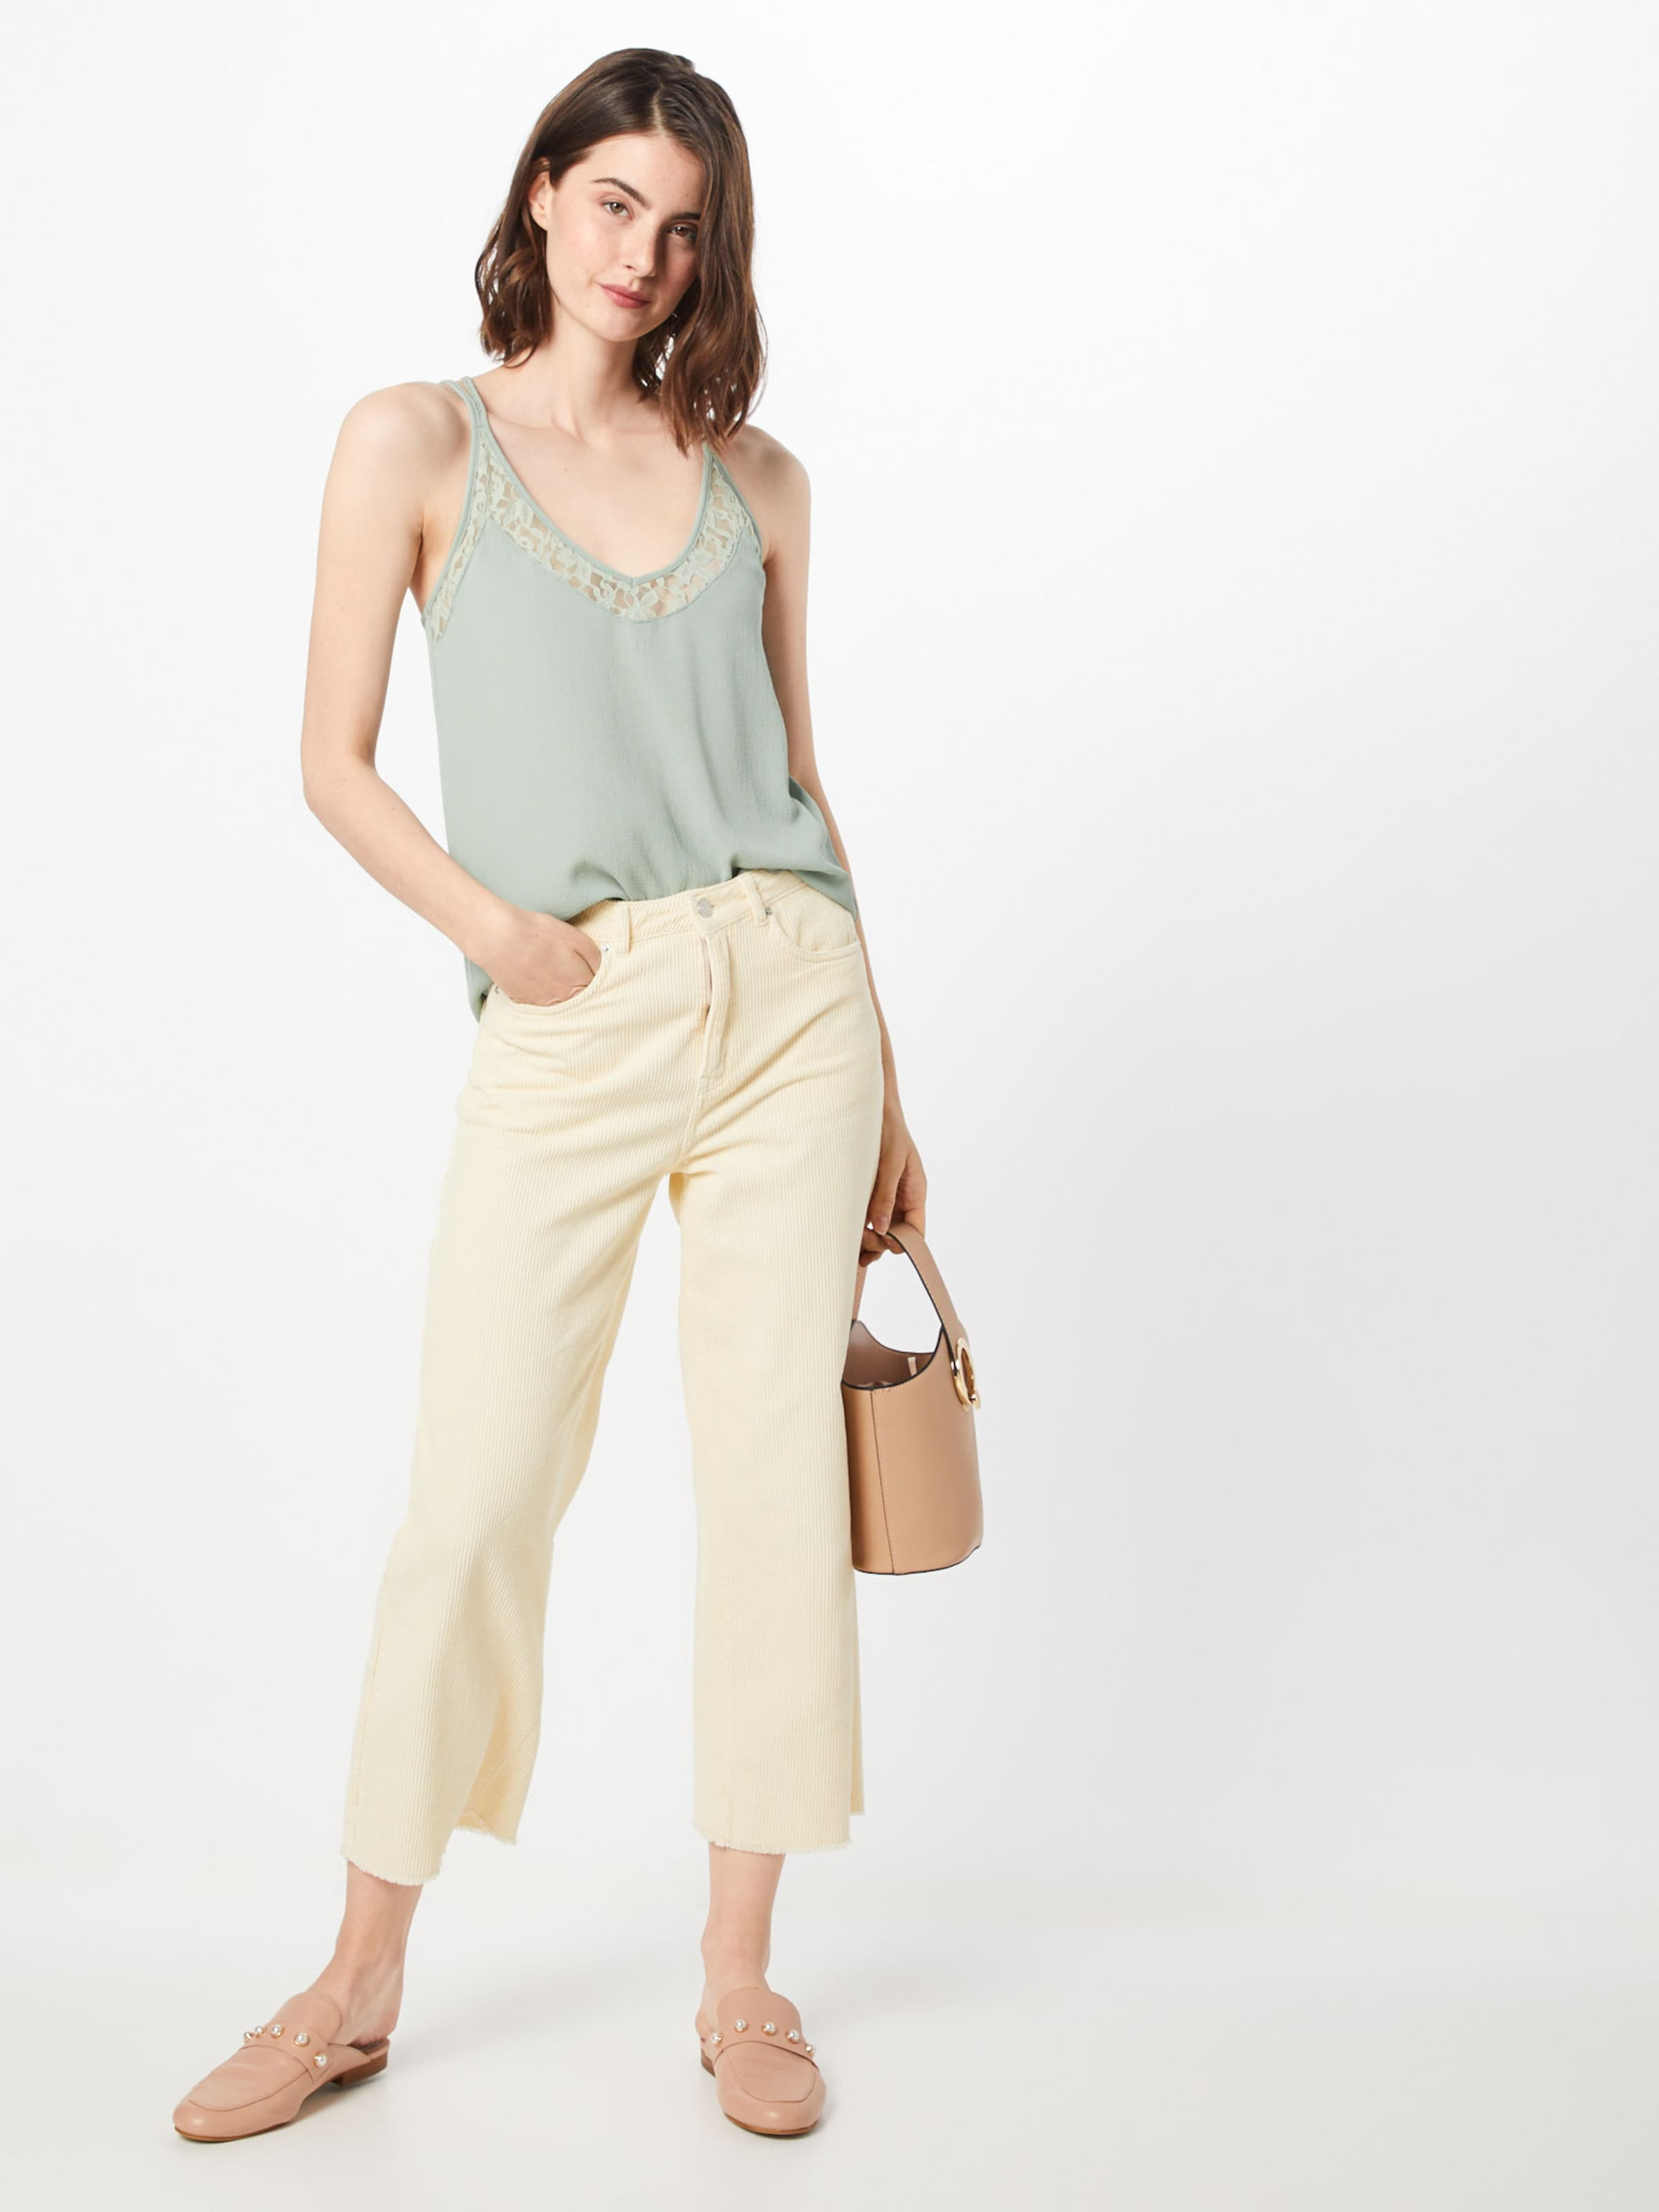 About You In 'alina' Mint Top 7ygIYbvf6